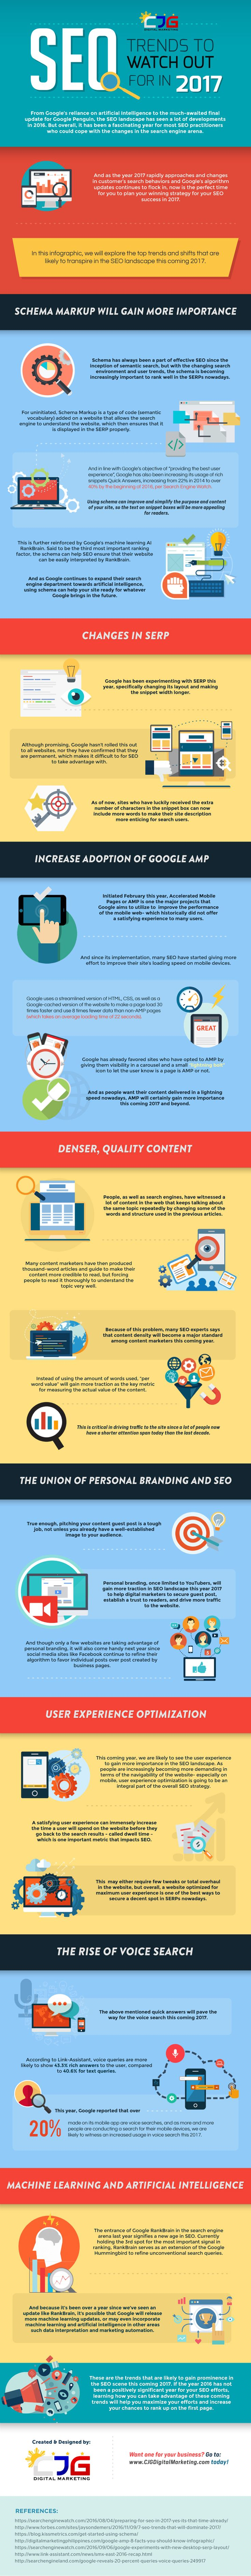 The Top 8 SEO Trends to Watch Out for in 2017 (Infographic) - An Infographic from CJG Digital Marketing